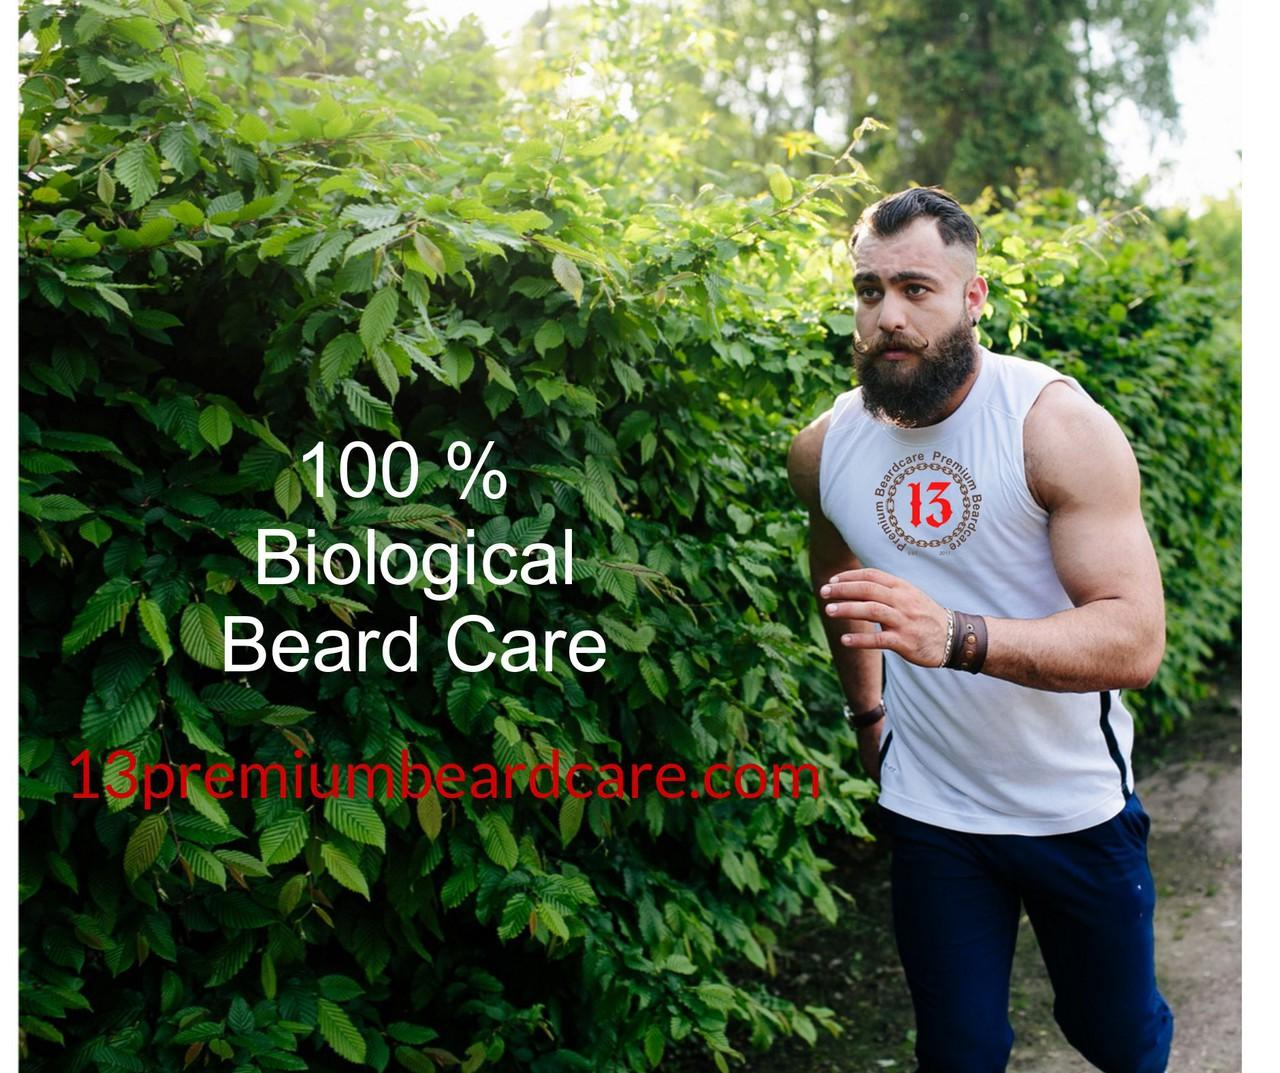 13premiumbeardcare.com 100% biological